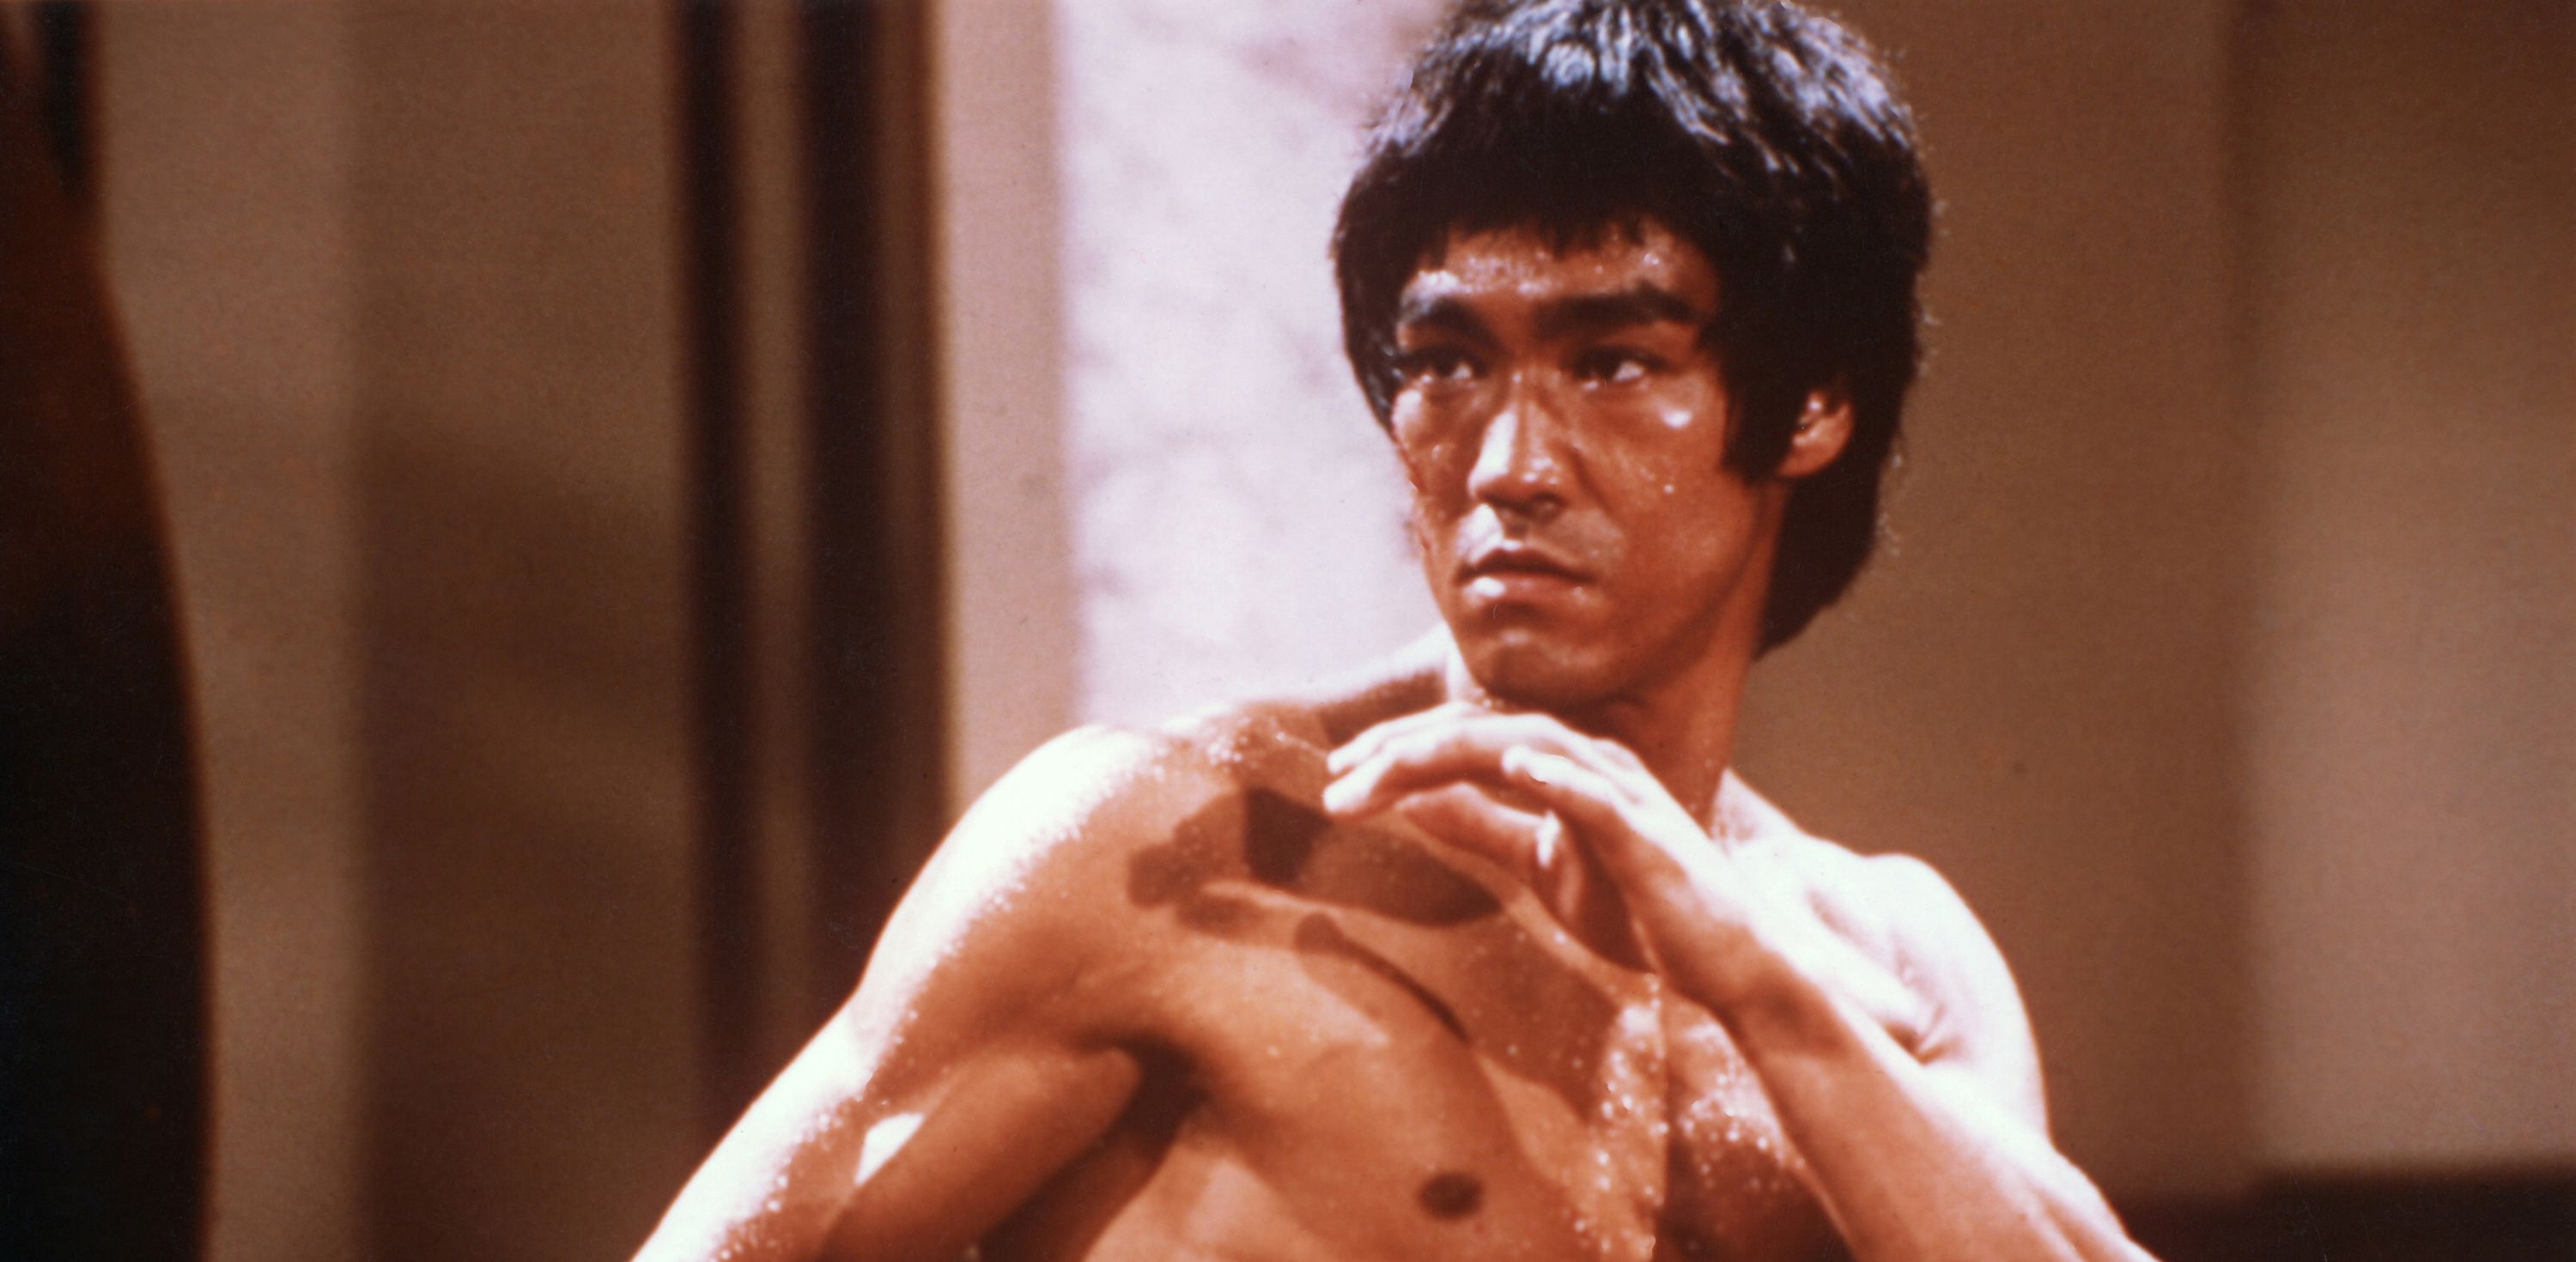 An image from Enter the Dragon